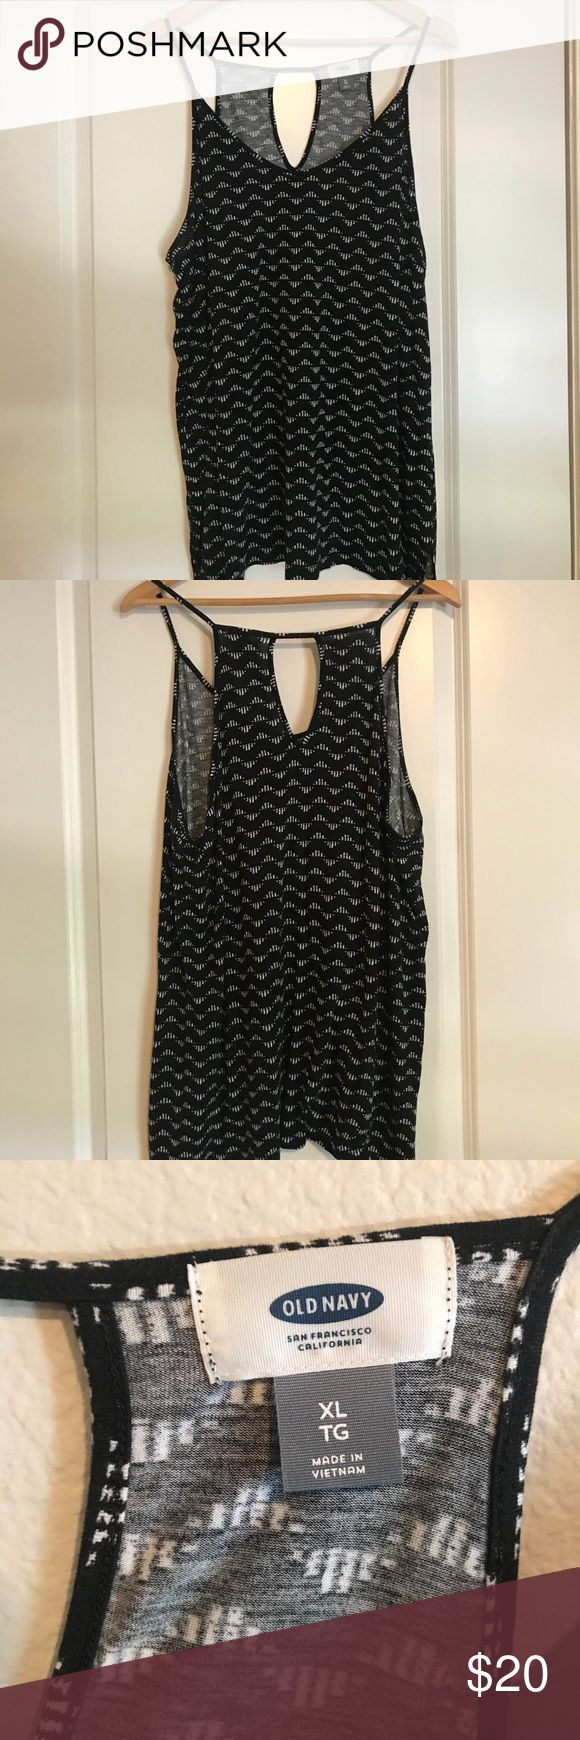 Black and White OLD NAVY Tank Top Gently warn, great condition Old Navy blue Tank Top. XL I have 3 different colors!! Please check my page for other options available!! No swaps😊 Old Navy Tops Tank Tops